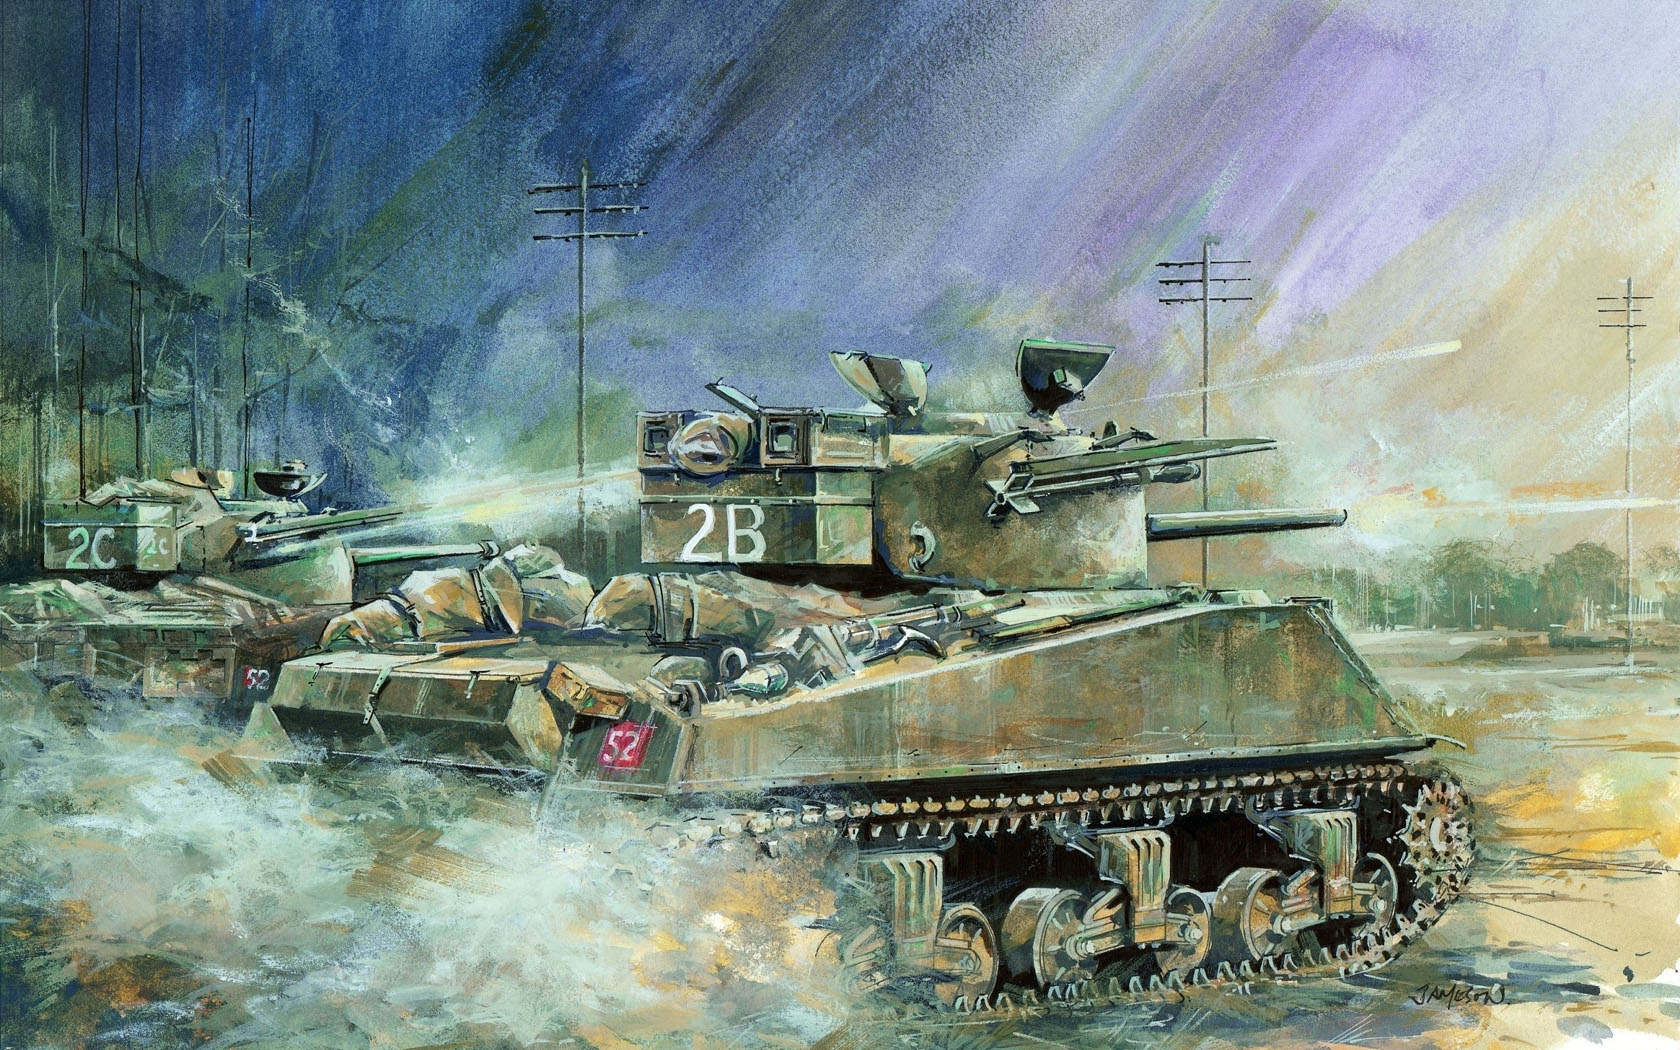 http://warwall.ru/Art3/Wallpaper_3179_AFV_British_Sherman.jpg